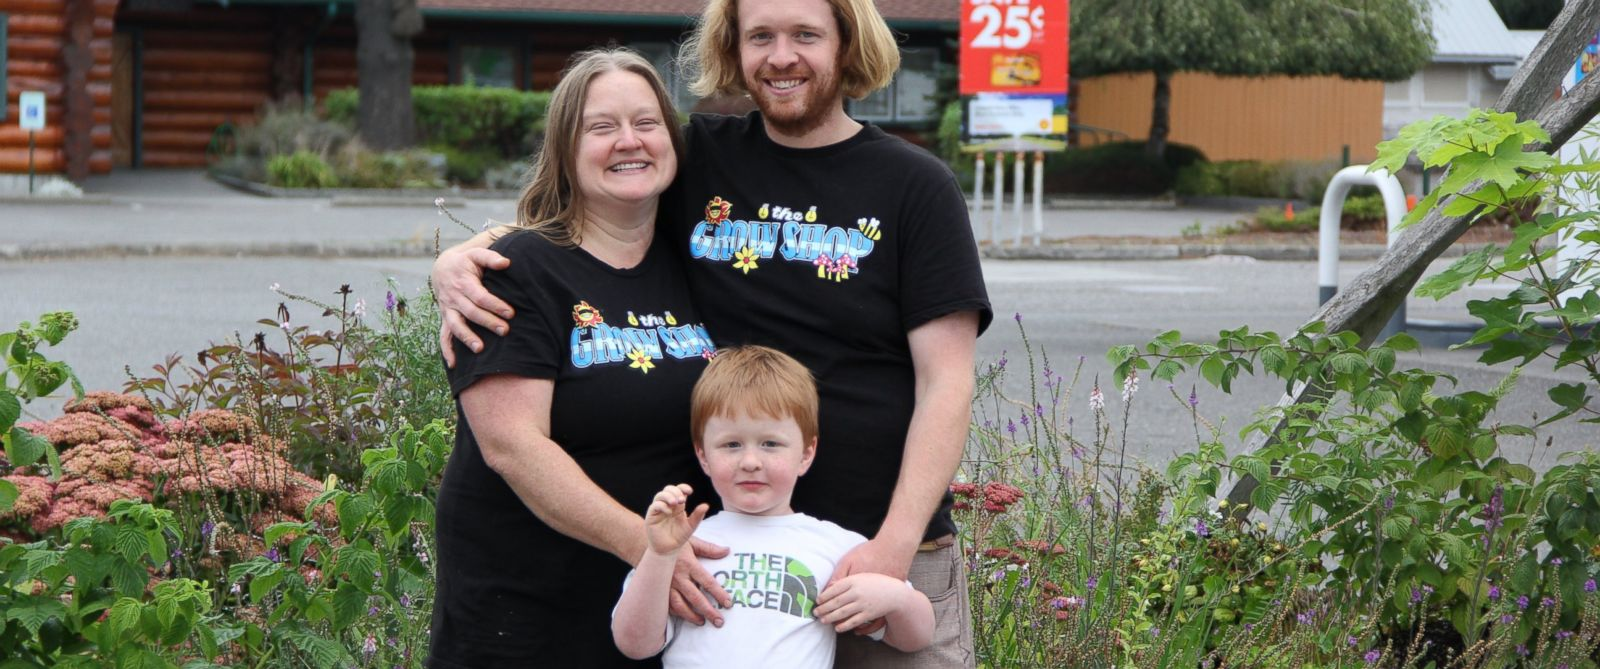 PHOTO: Vicca and Jesse Thompson, pictured here with their son Jerry, 5, were accused of posing a risk to their sons wellbeing by feeding marijuana to him.